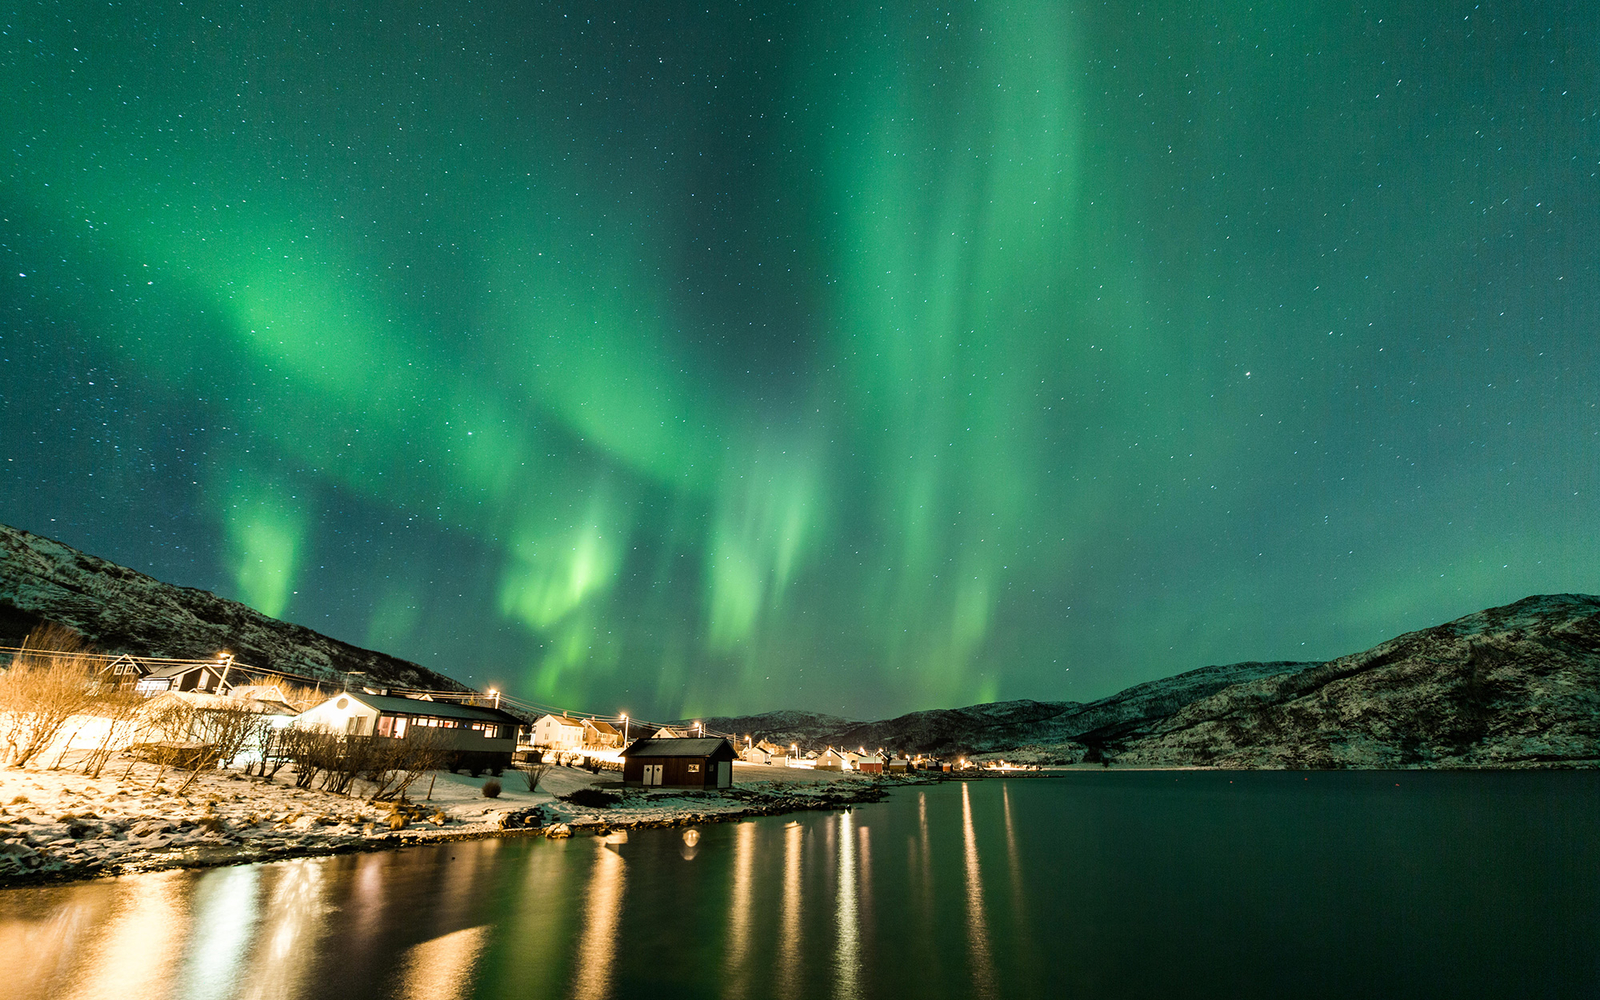 Best Place Tromso See Northern Lights